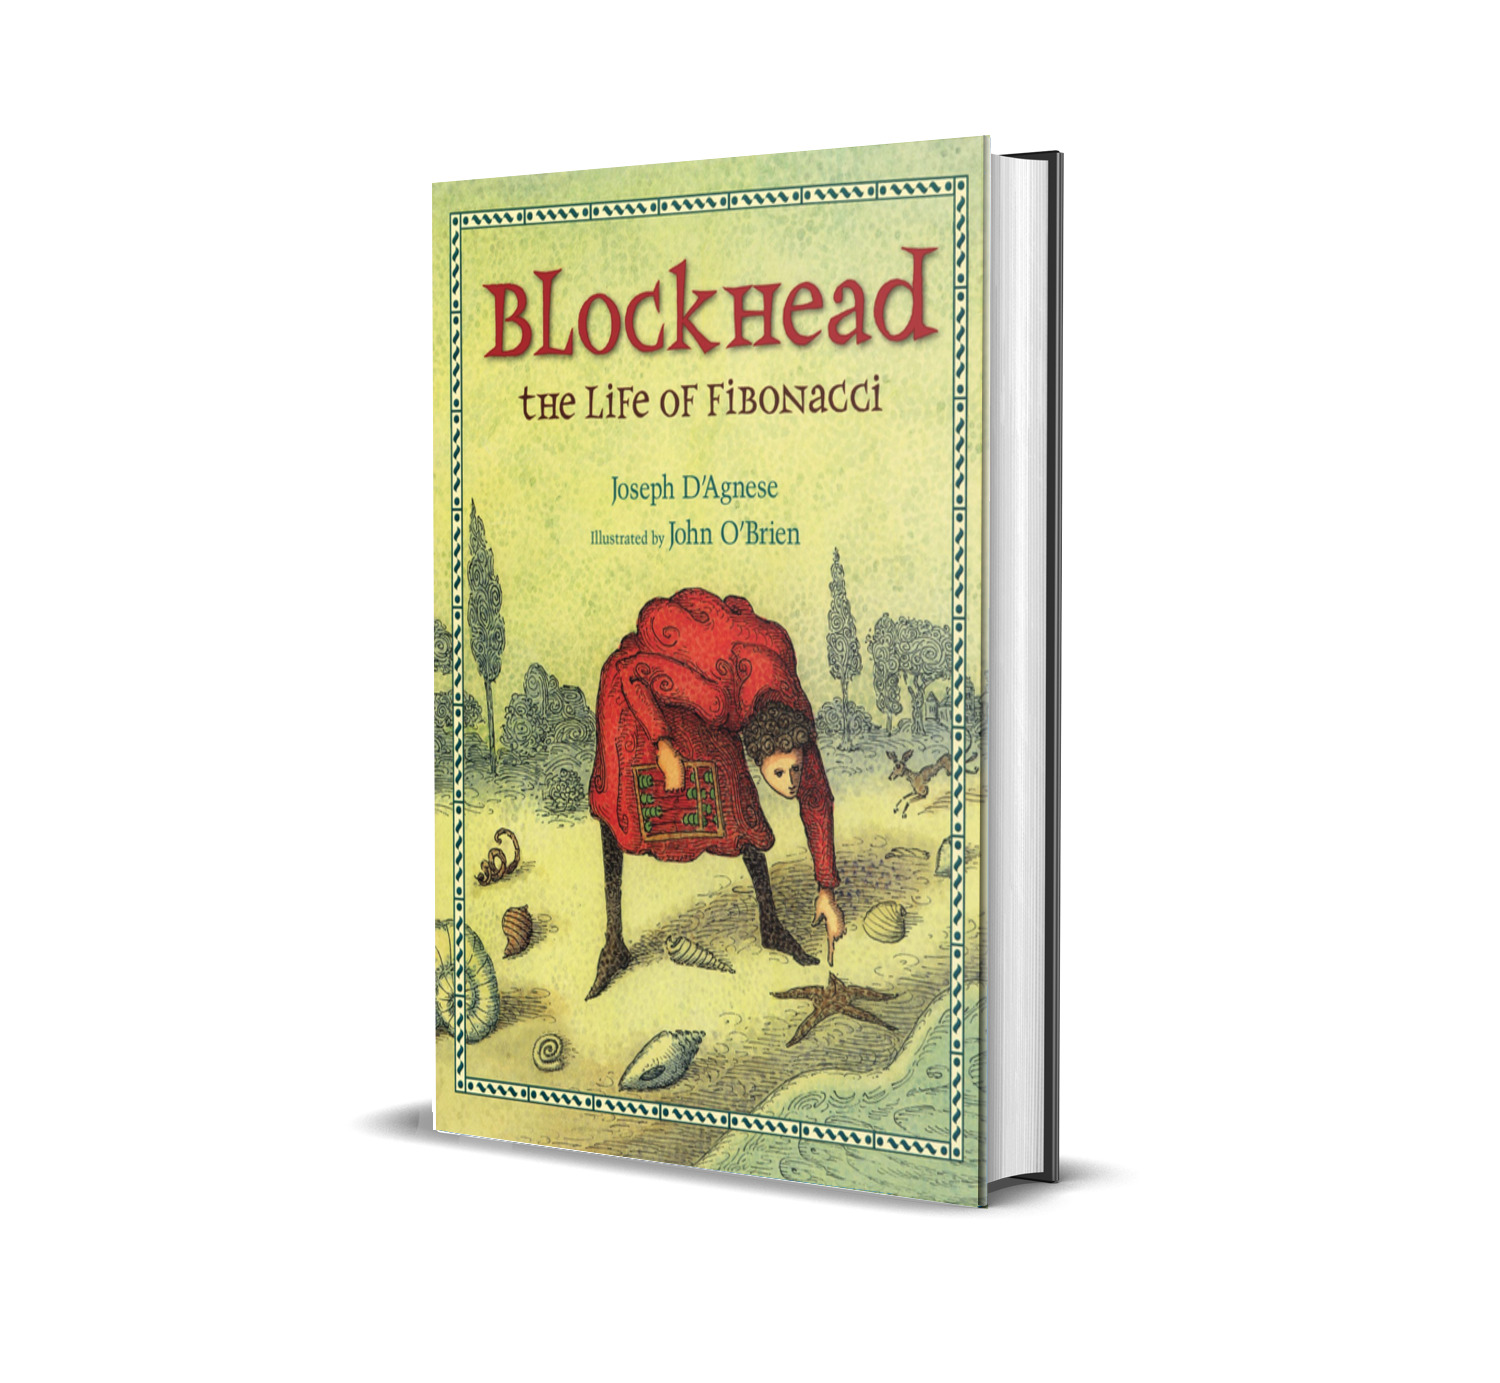 Blockhead: The Life of Fibonacci by Joseph D'Agnese